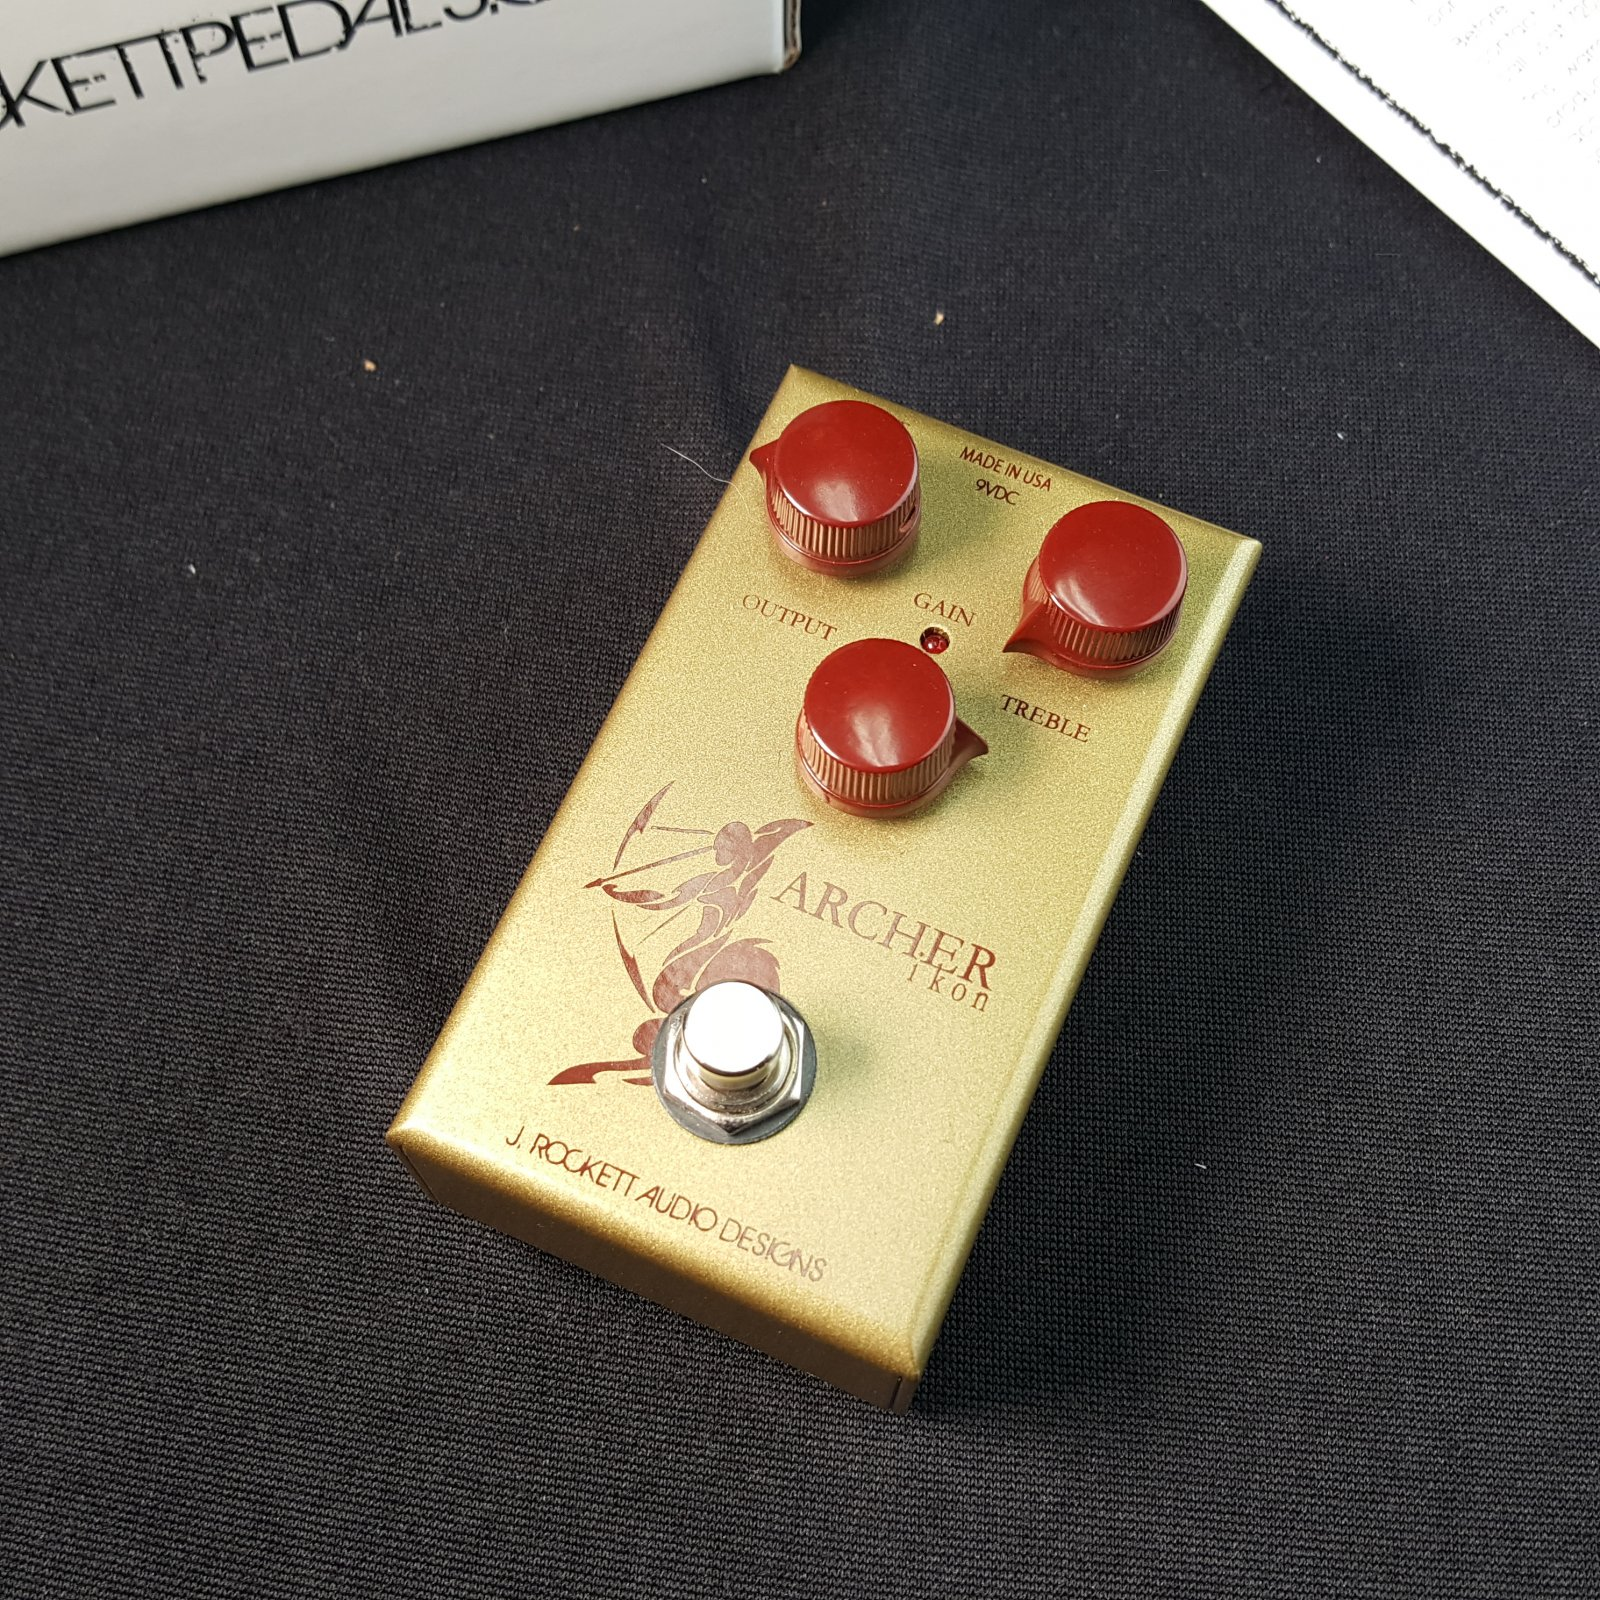 USED J. Rockett Archer Ikon Gain / Boost Pedal